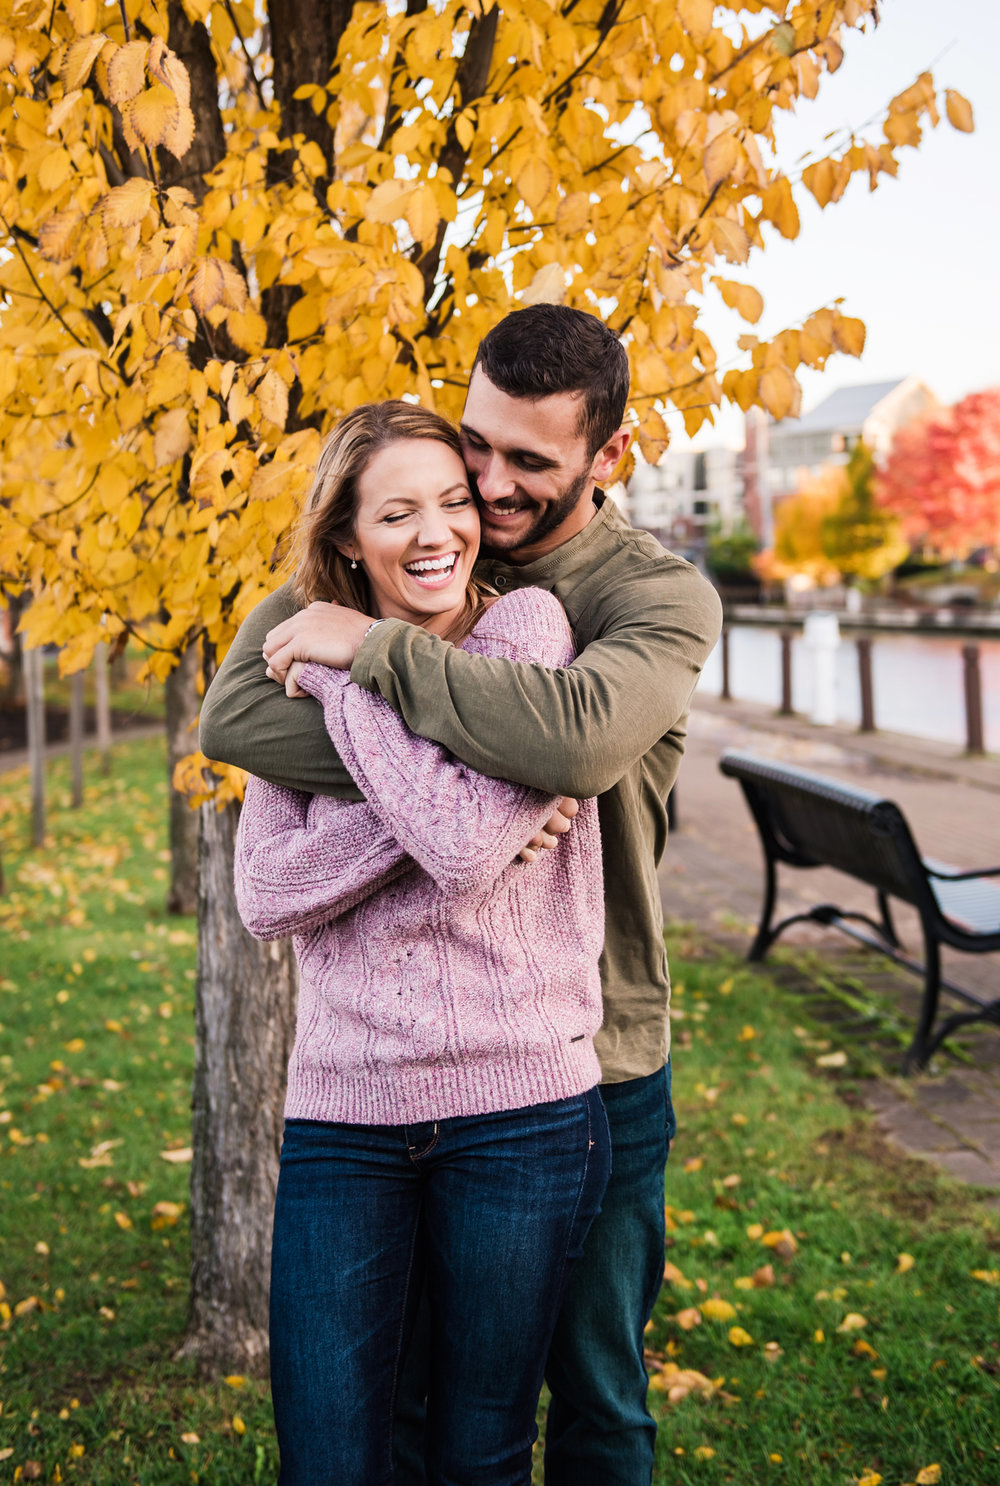 Village_of_Fairport_Rochester_Engagement_Session_JILL_STUDIO_Rochester_NY_Photographer_DSC_8707.jpg